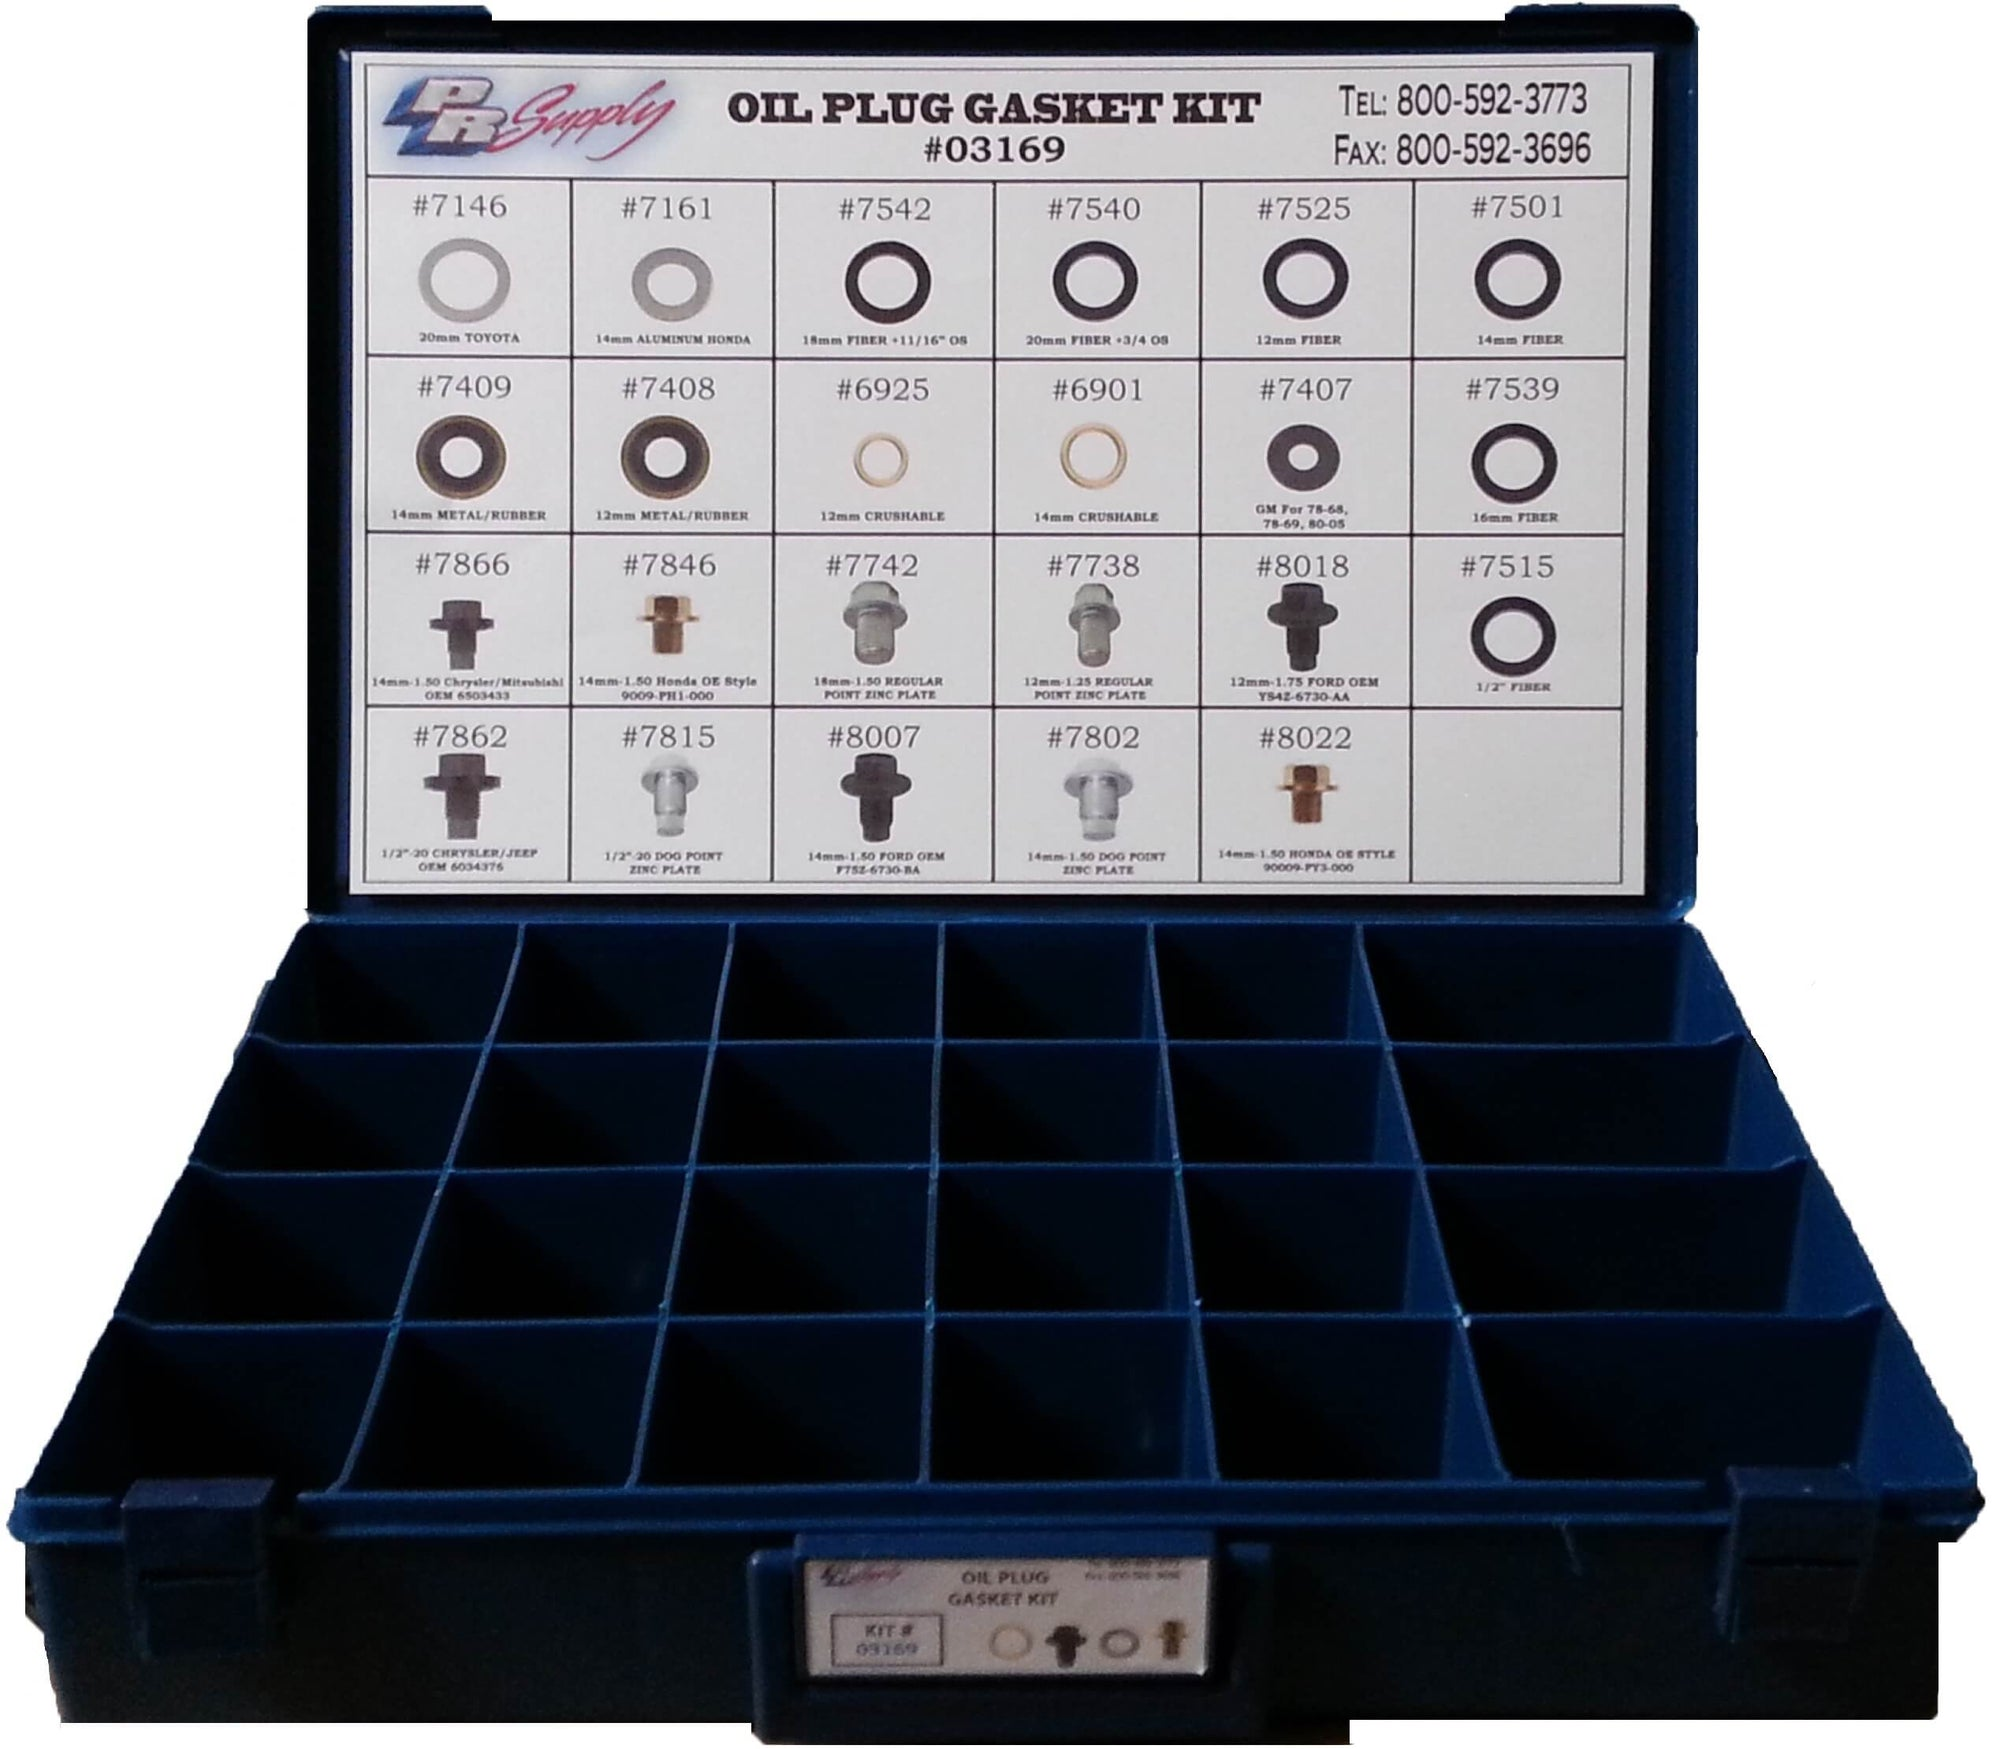 Oil Change Gasket and Oil Plug Kit